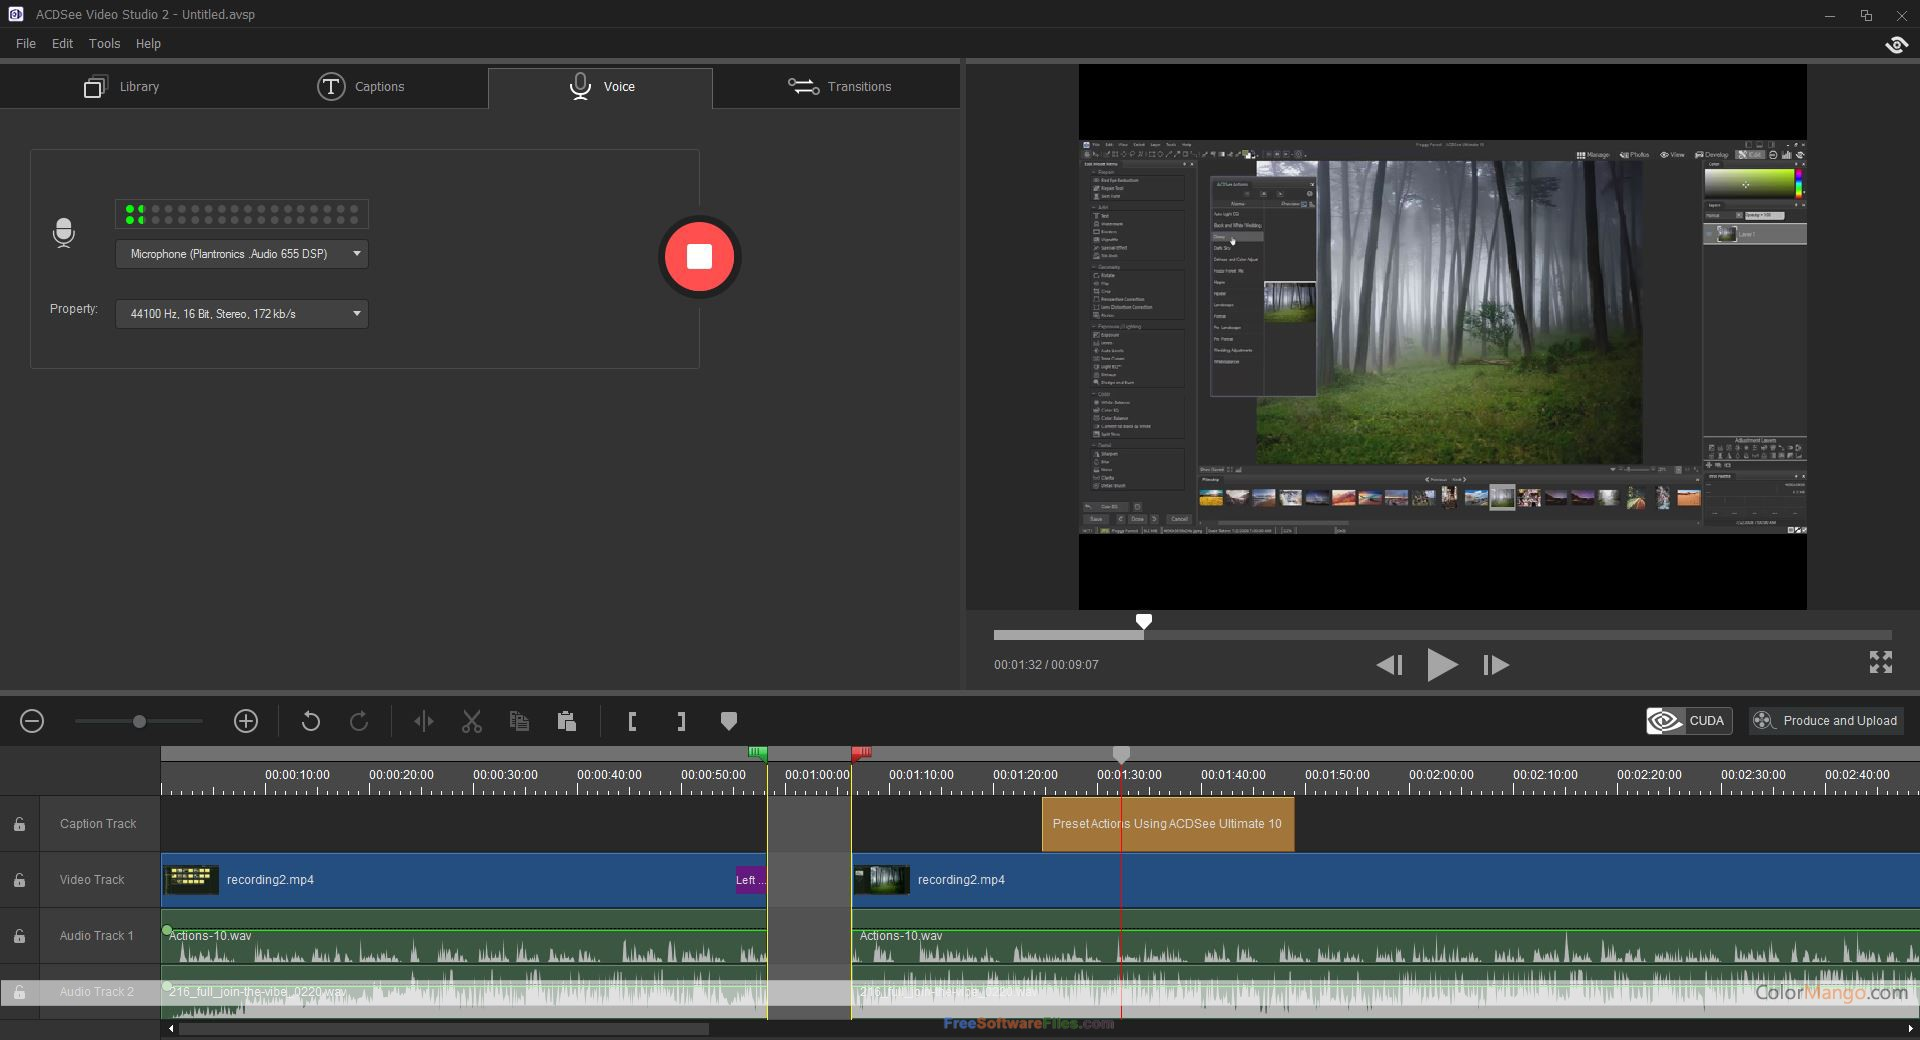 ACDSee Video Studio 3.0 Offline Installer Download